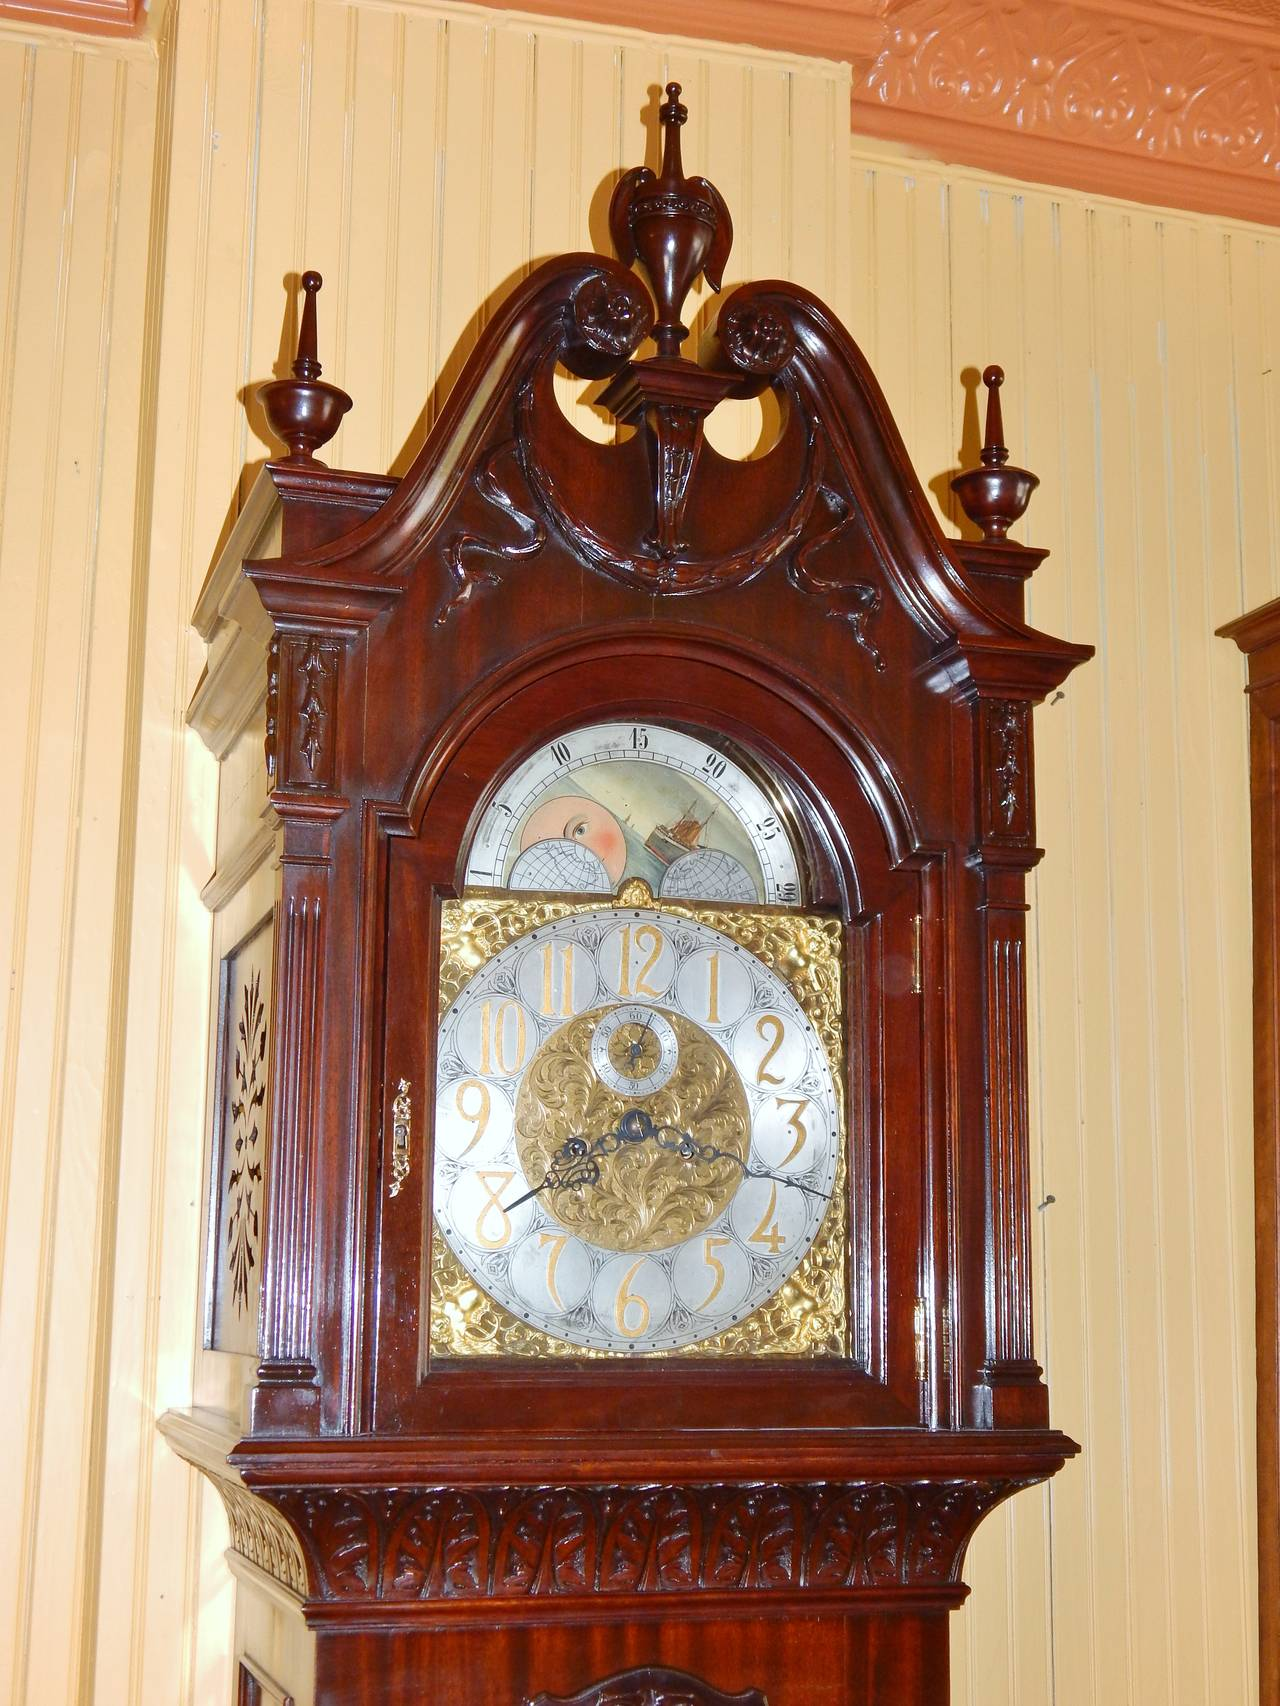 Genial Sale Far Clock Parts A Ly Carved Mahogany Large Size Far Works Signed Patent Monumental Rare Carved Mahogany Far Clock By Korfhage Far Clocks furniture Unique Grandfather Clock